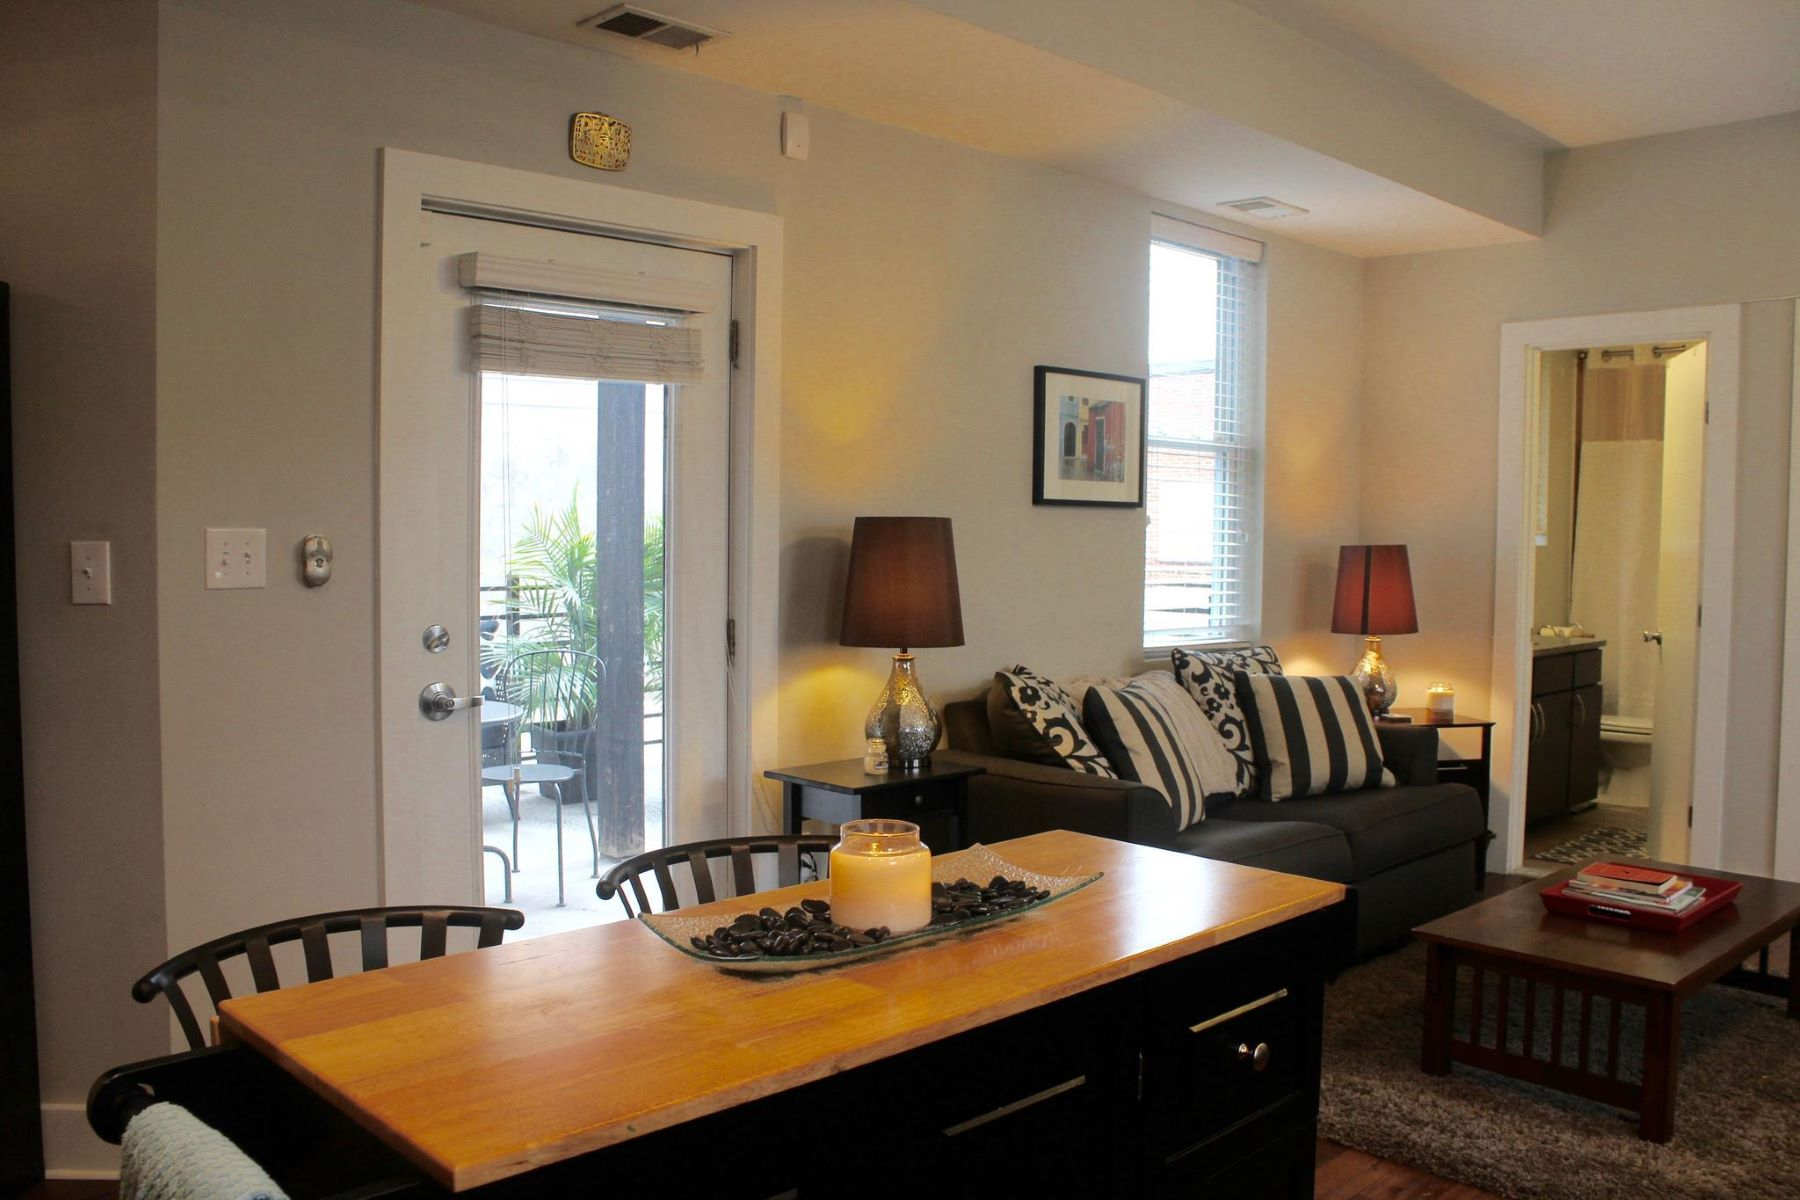 Additional photo for property listing at 284 15th St Se #101 284 15th St Se #101 Washington, District Of Columbia 20003 United States